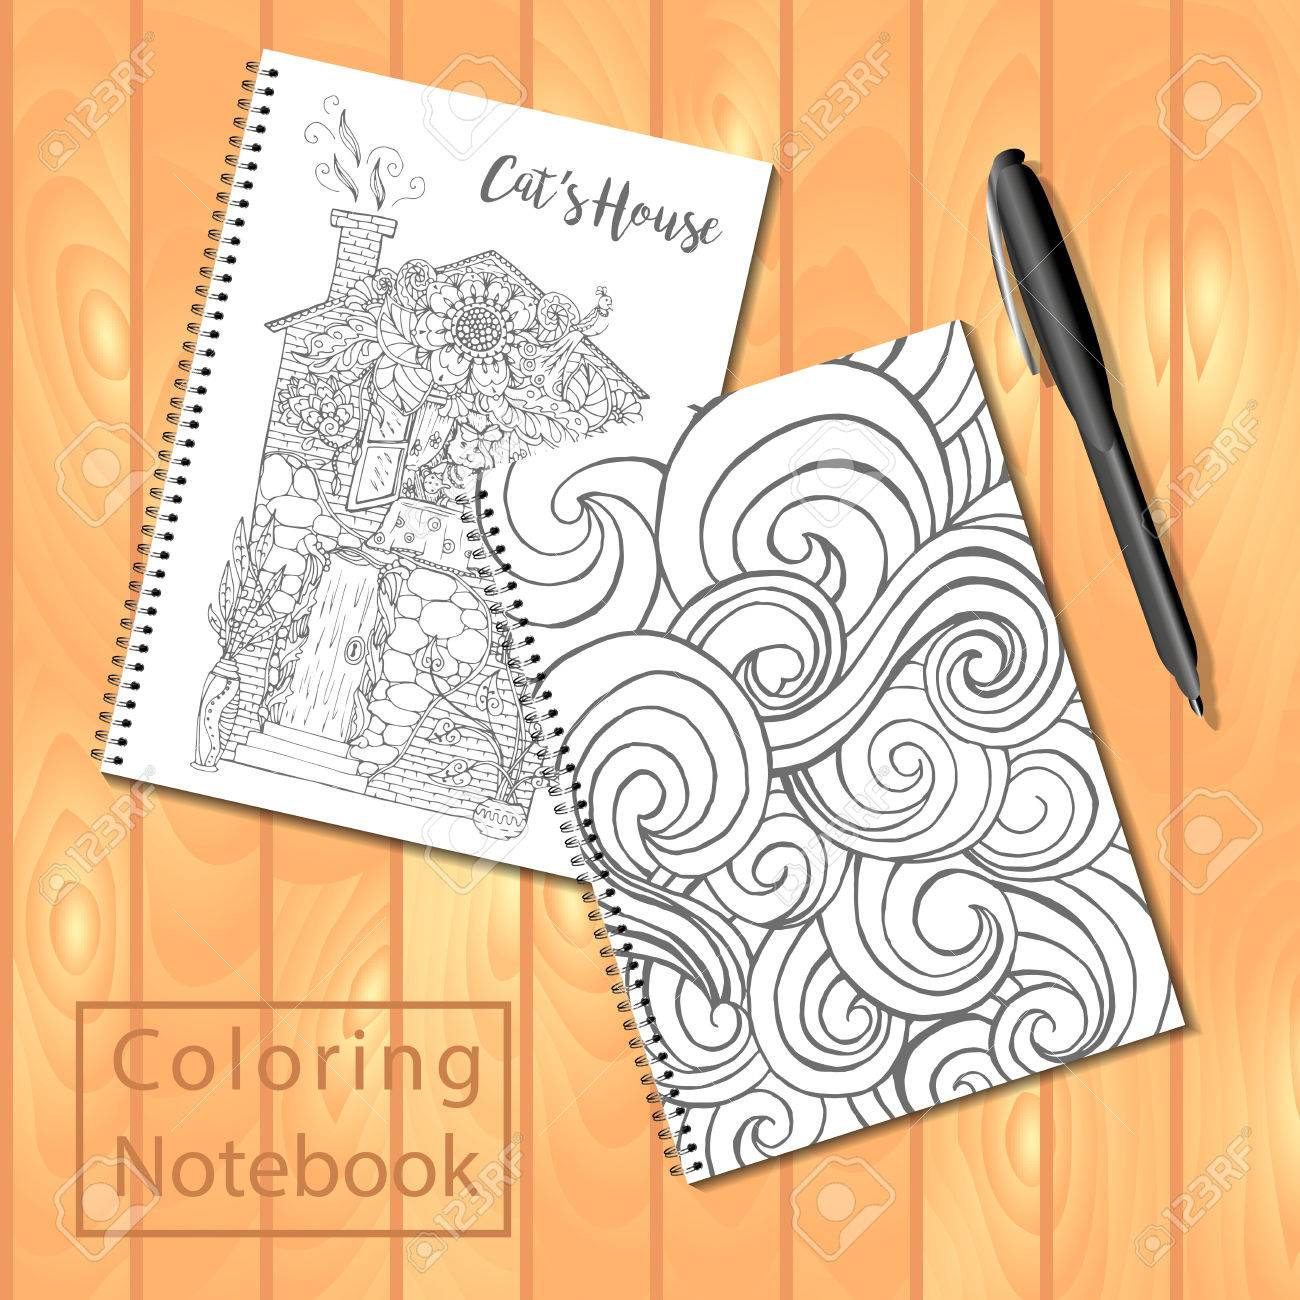 spiral bound notepads or coloring book with pen and coloring pages pictures wavy cover - Coloring Book Paper Stock